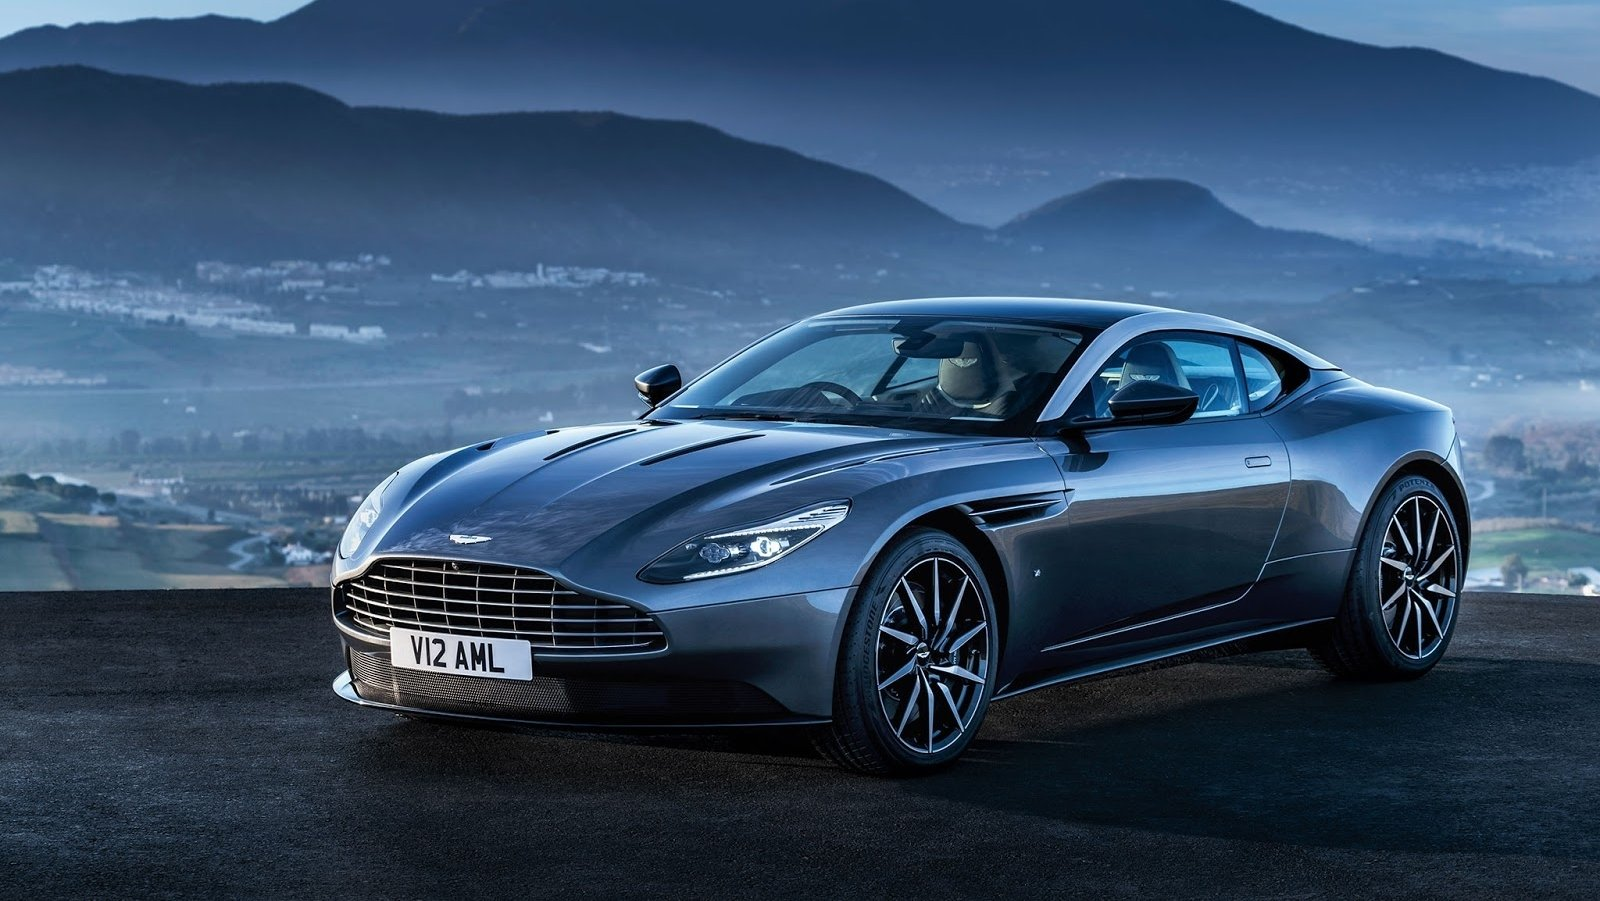 aston martin db11 reviews, specs, prices, photos and videos | top speed